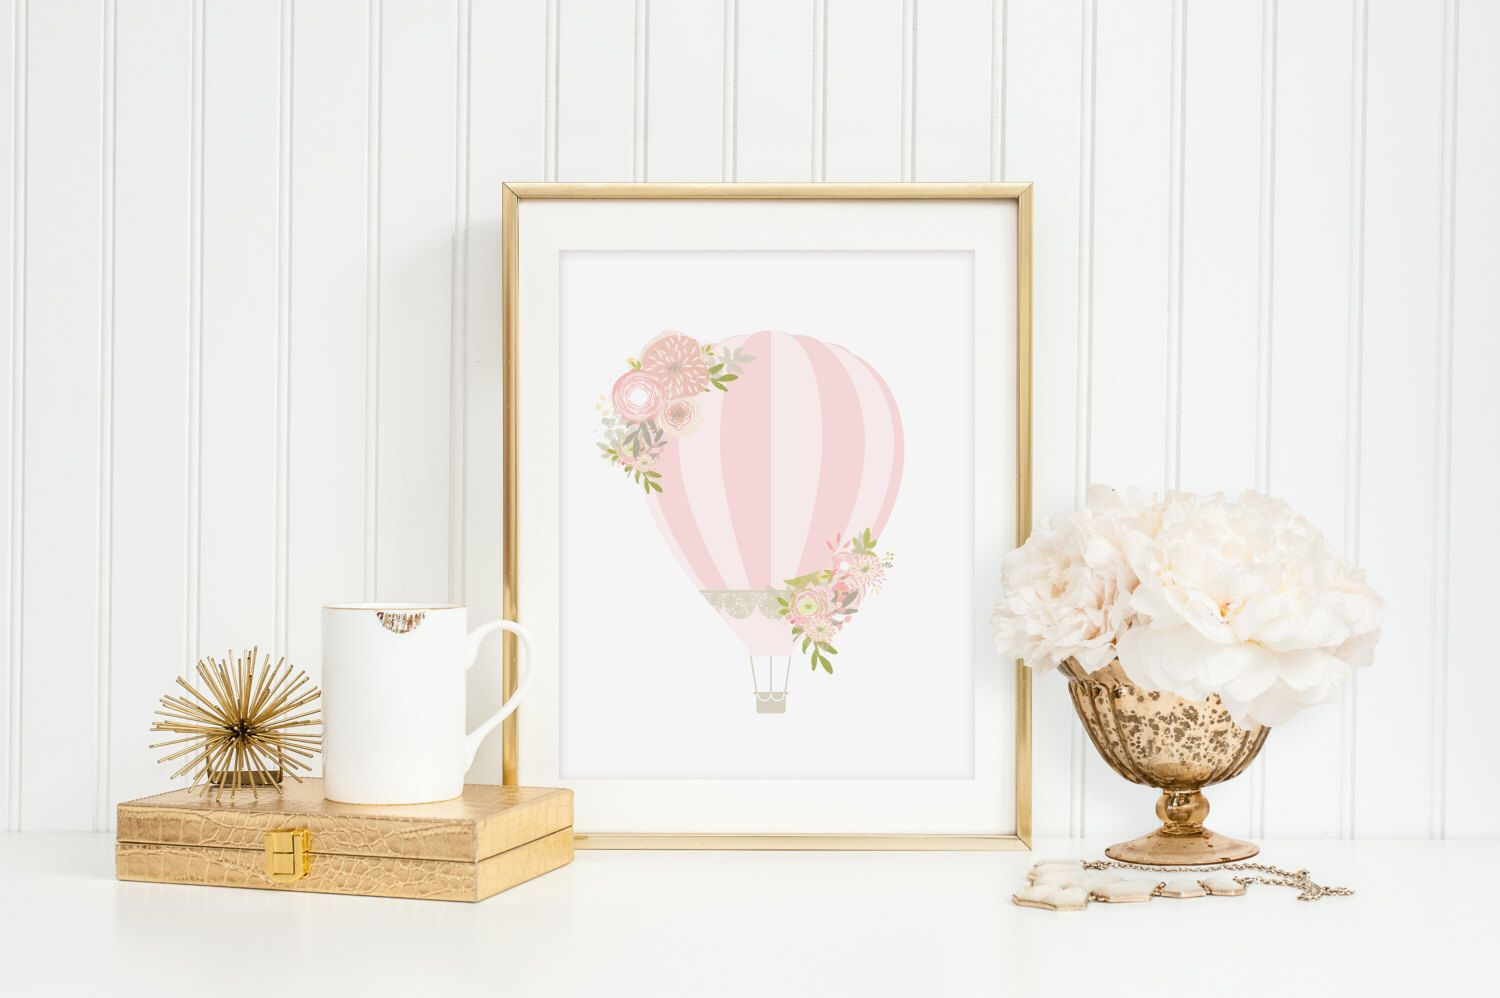 Pink Hot Air Balloon Print Wall Art Watercolor Nursery Blush Ballet Powder Flowers Girly Print Digital Drawing Handpainted Wall Art by froufroucraft on Etsy https://www.etsy.com/listing/232721166/pink-hot-air-balloon-print-wall-art